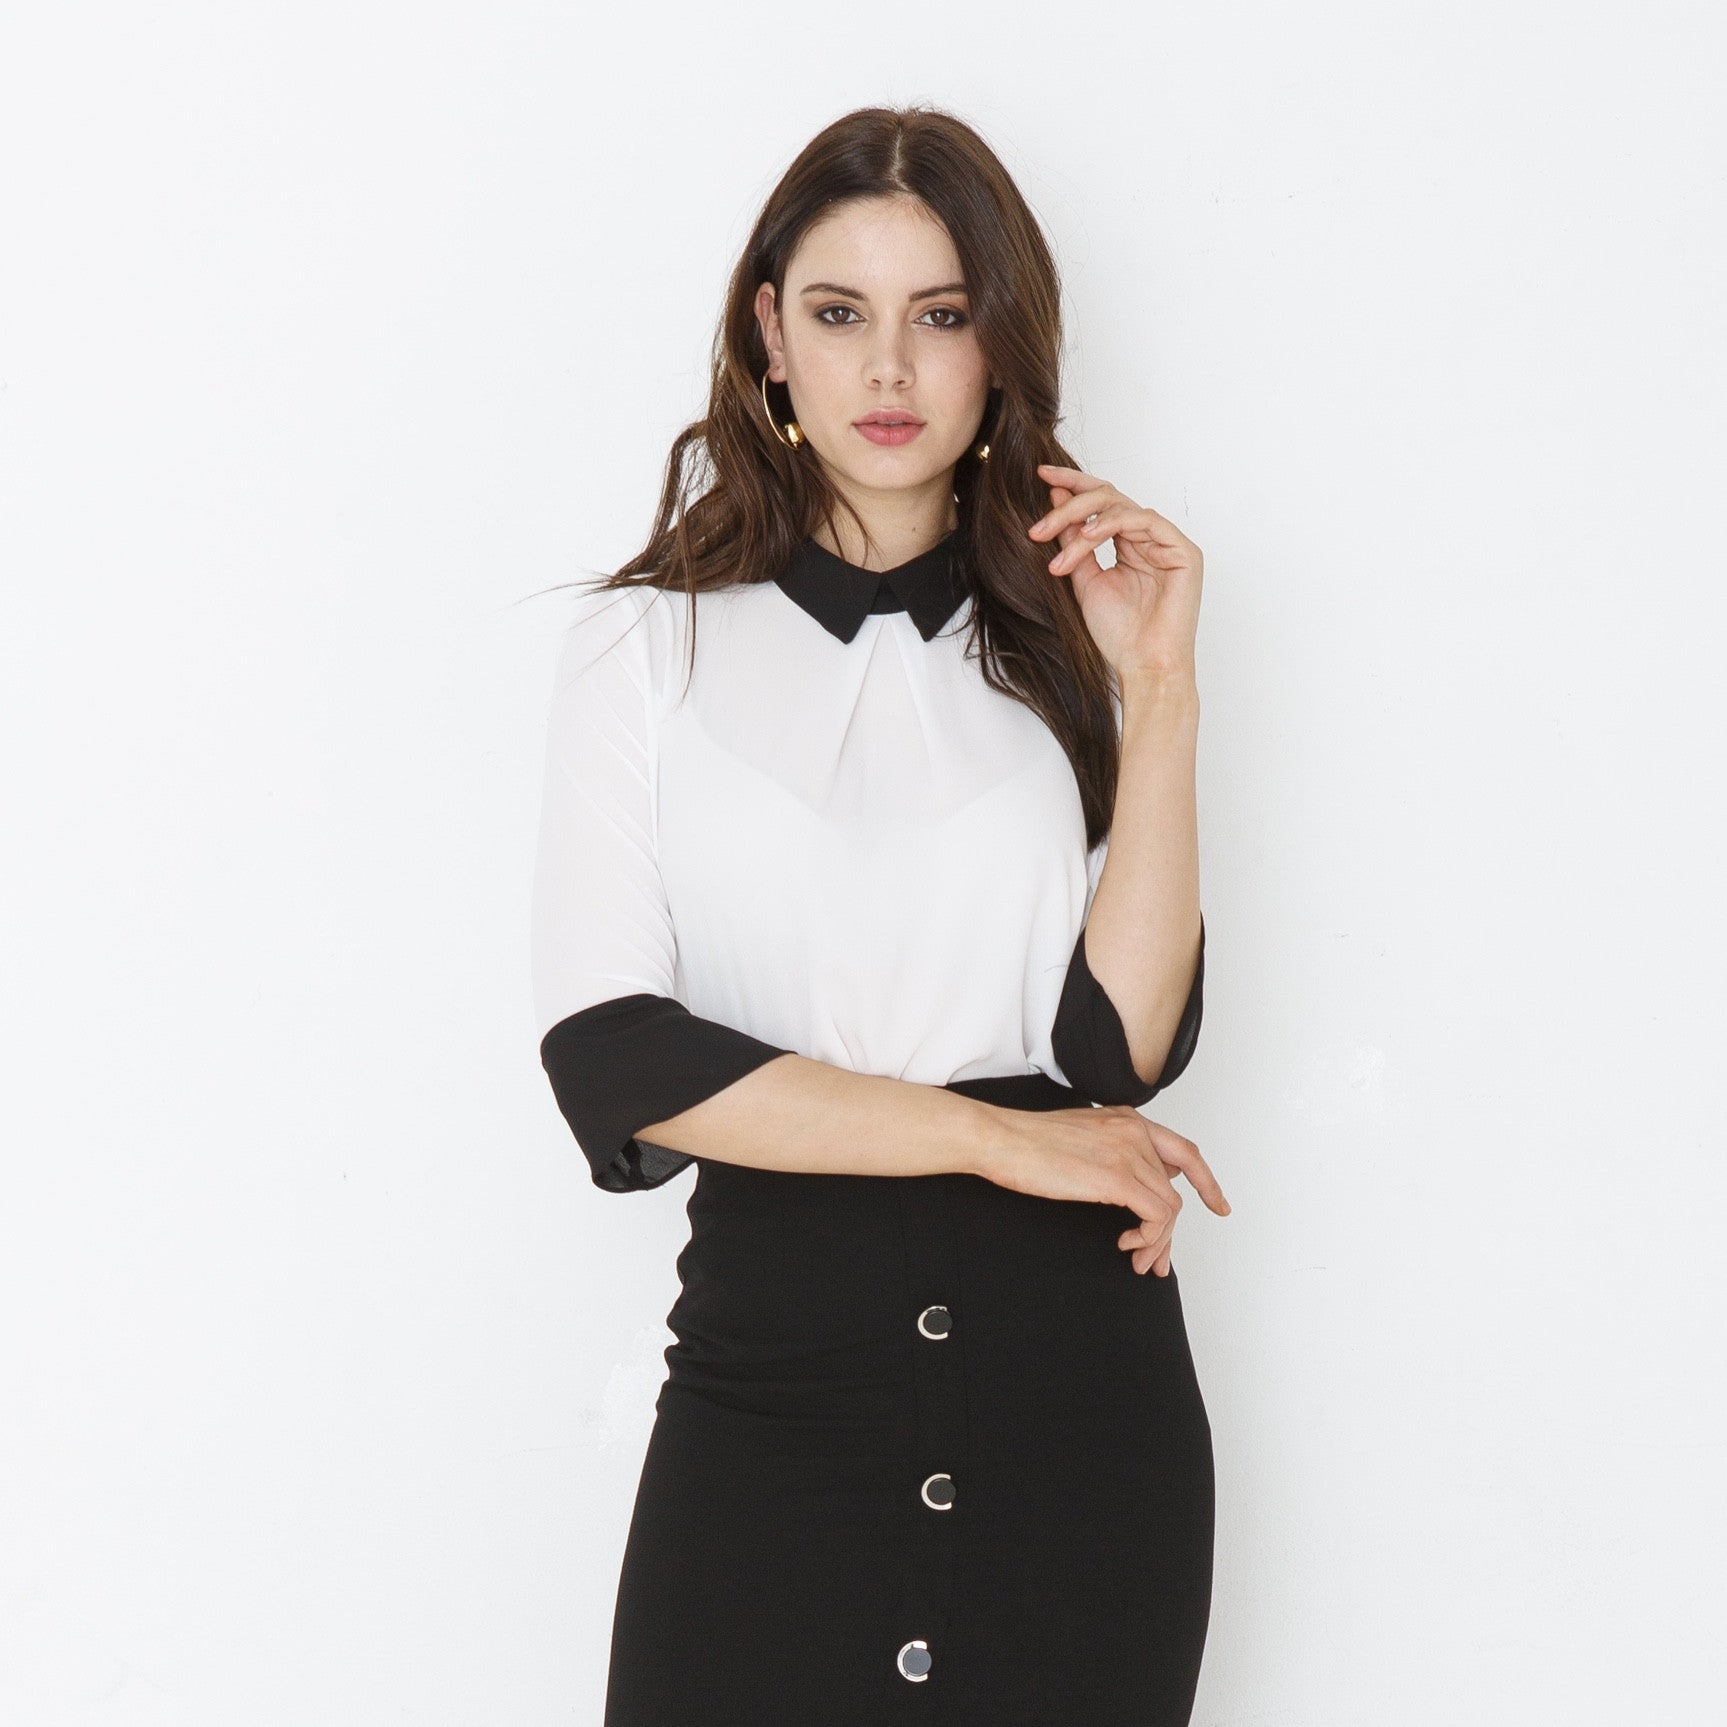 White top with black collar